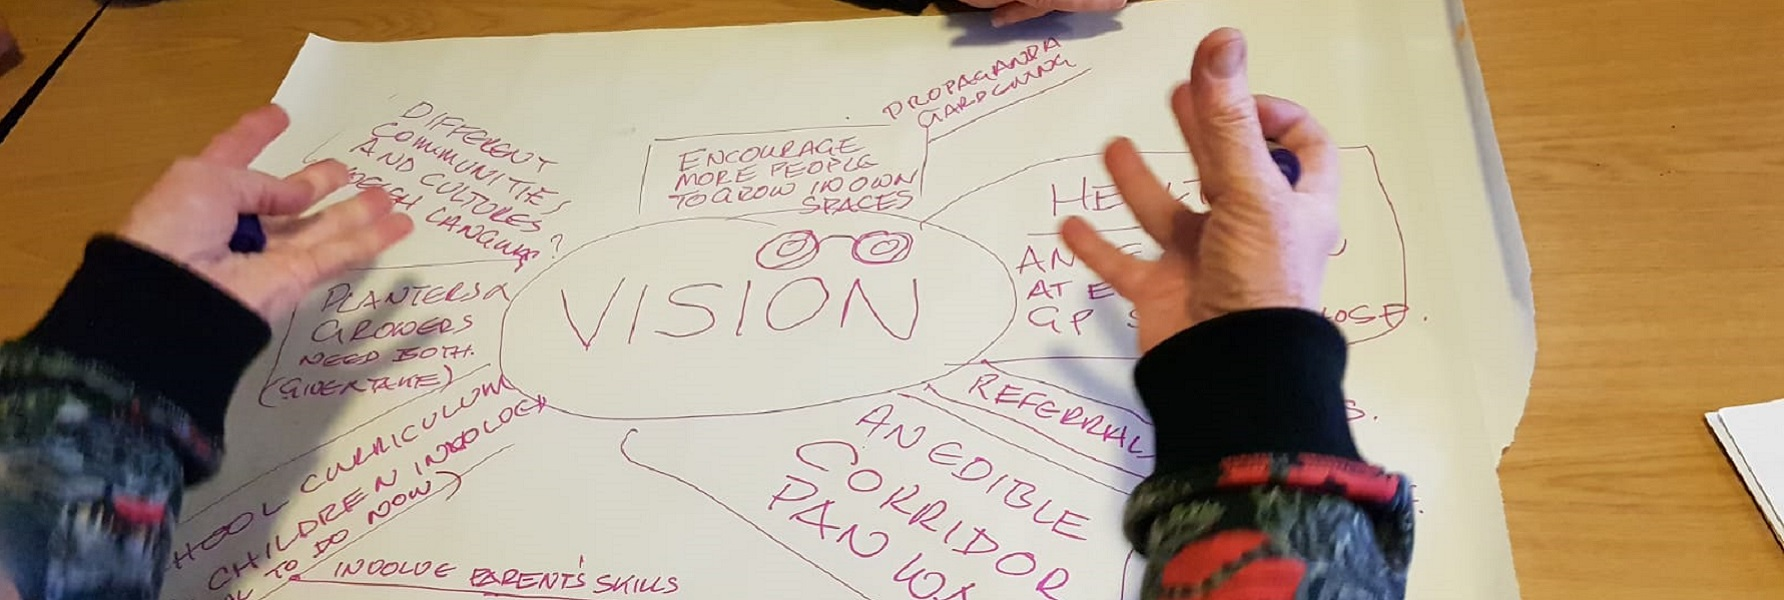 Close up of a large sheet of paper on a table surrounded by people with ideas around visioning